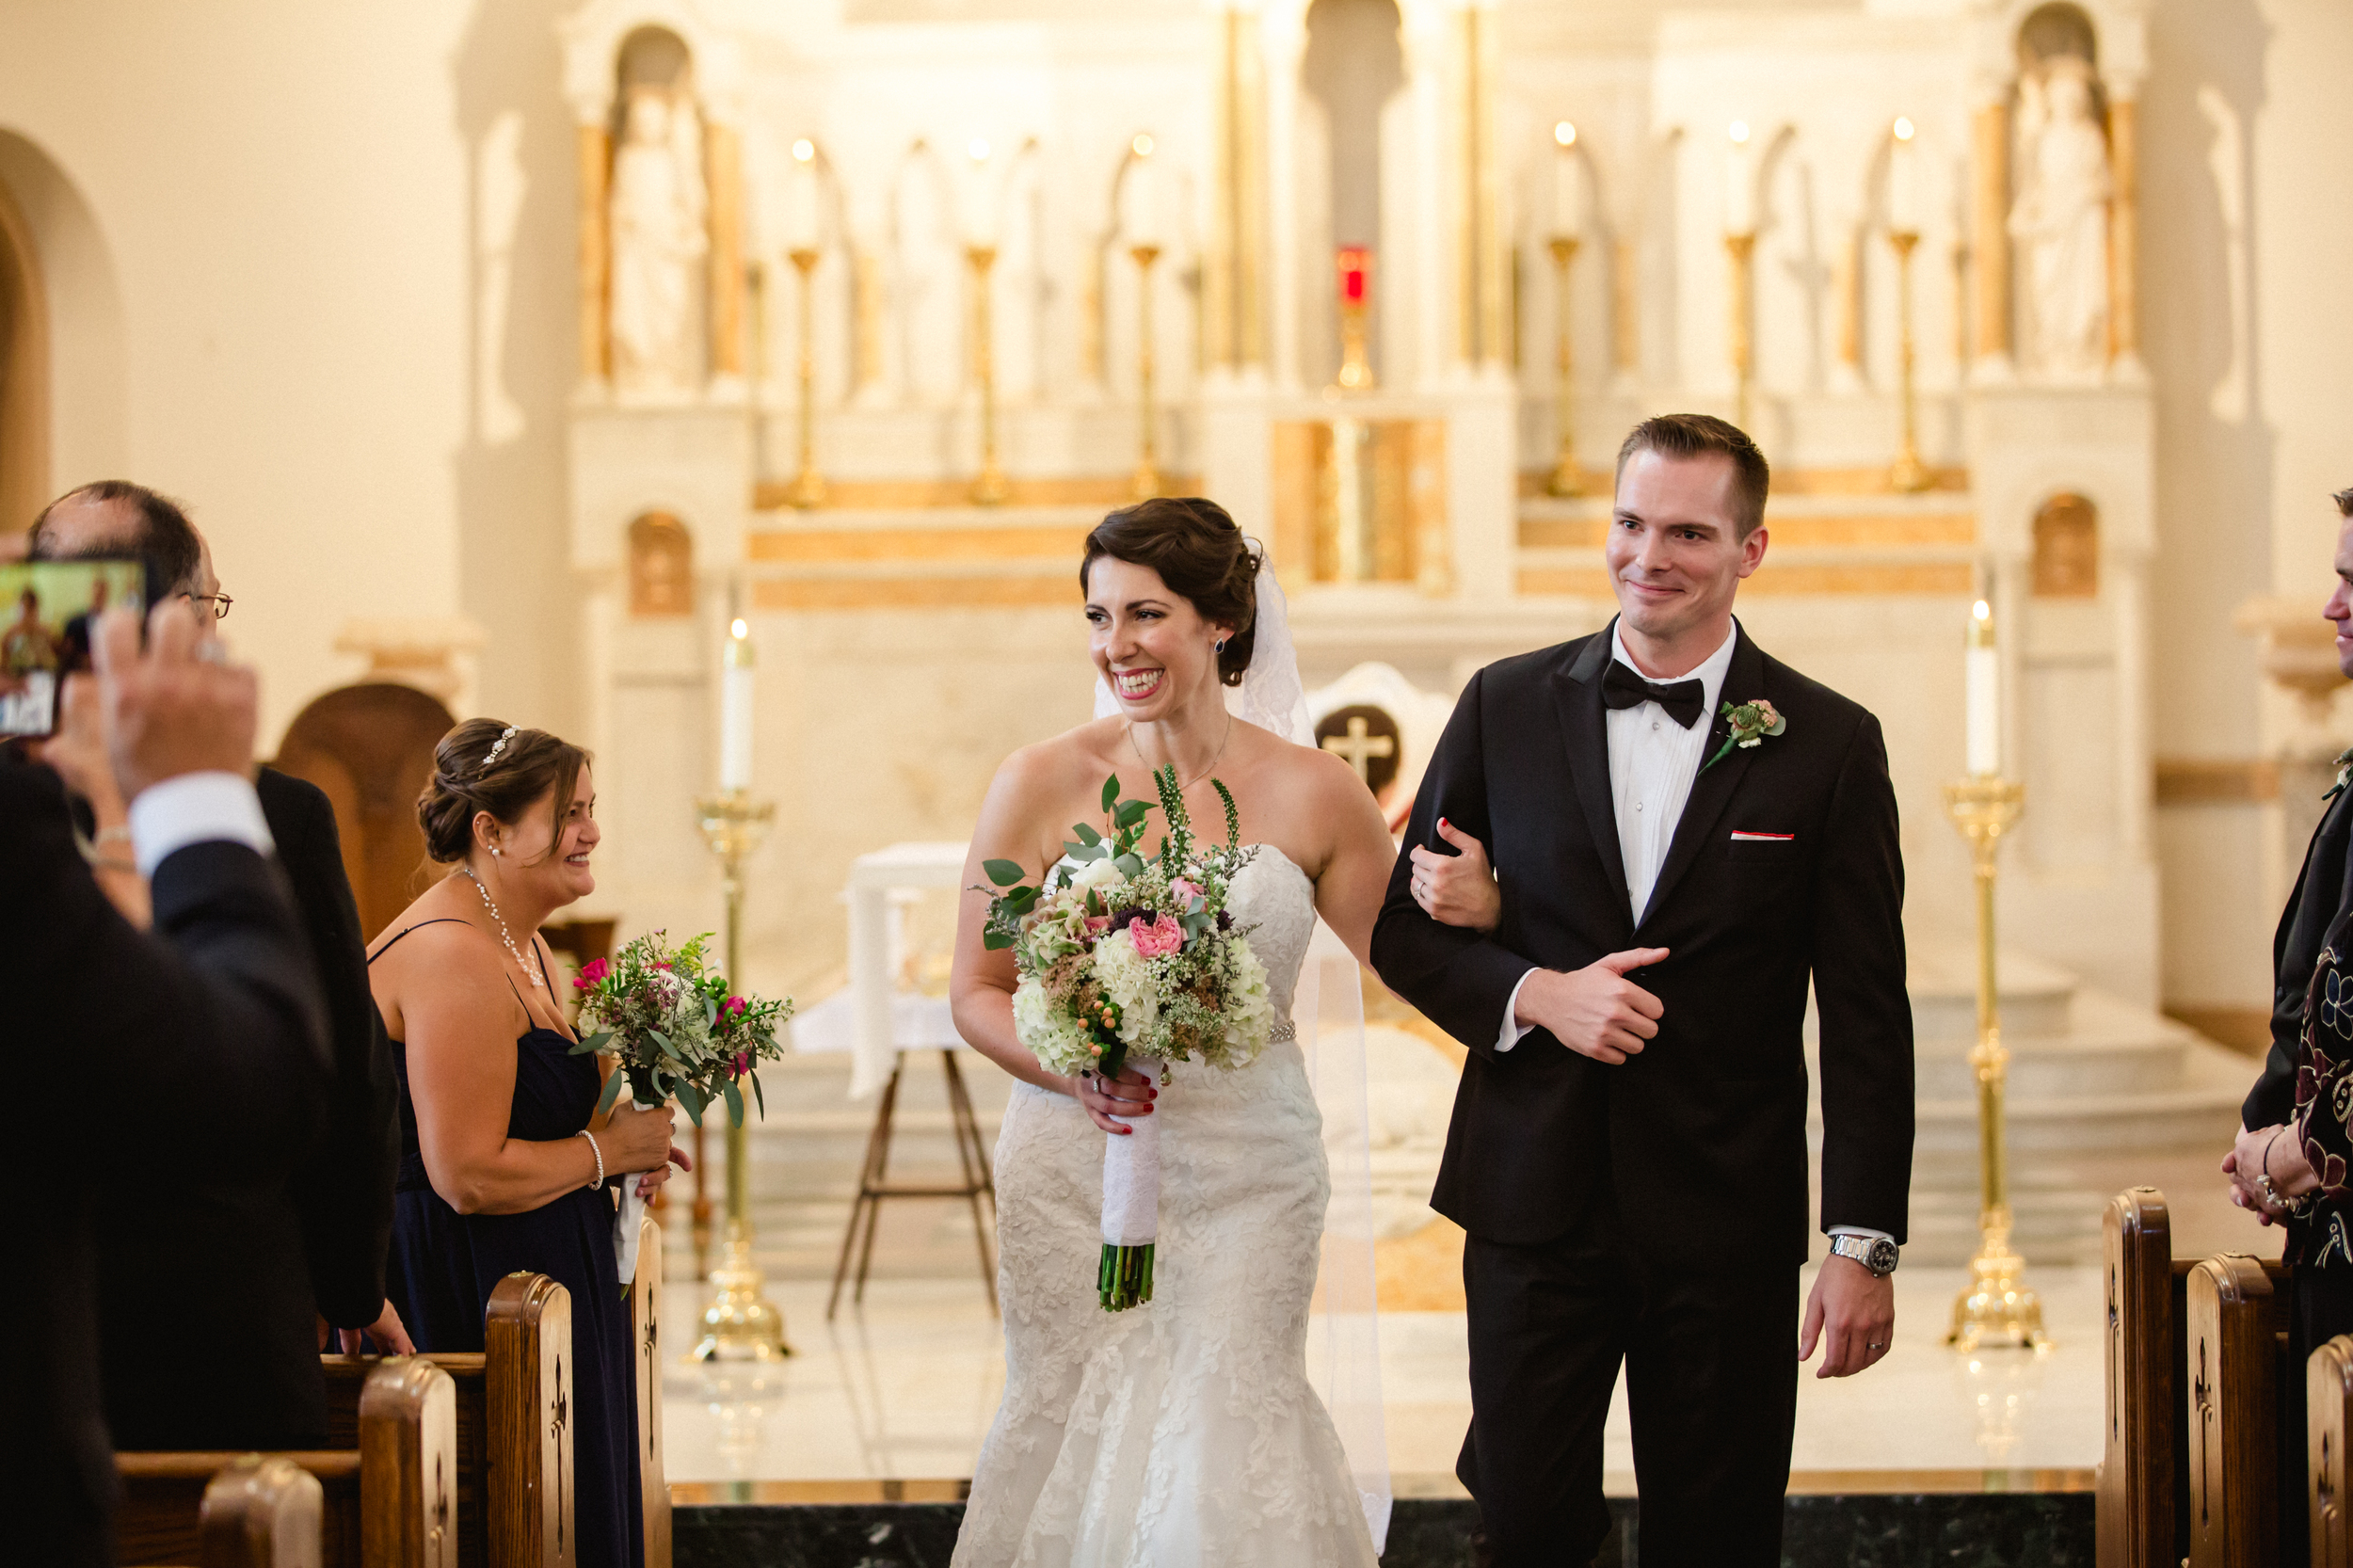 Vness_Photography_Wedding_Photographer_Washington-DC_Fish_Wedding-461.JPG